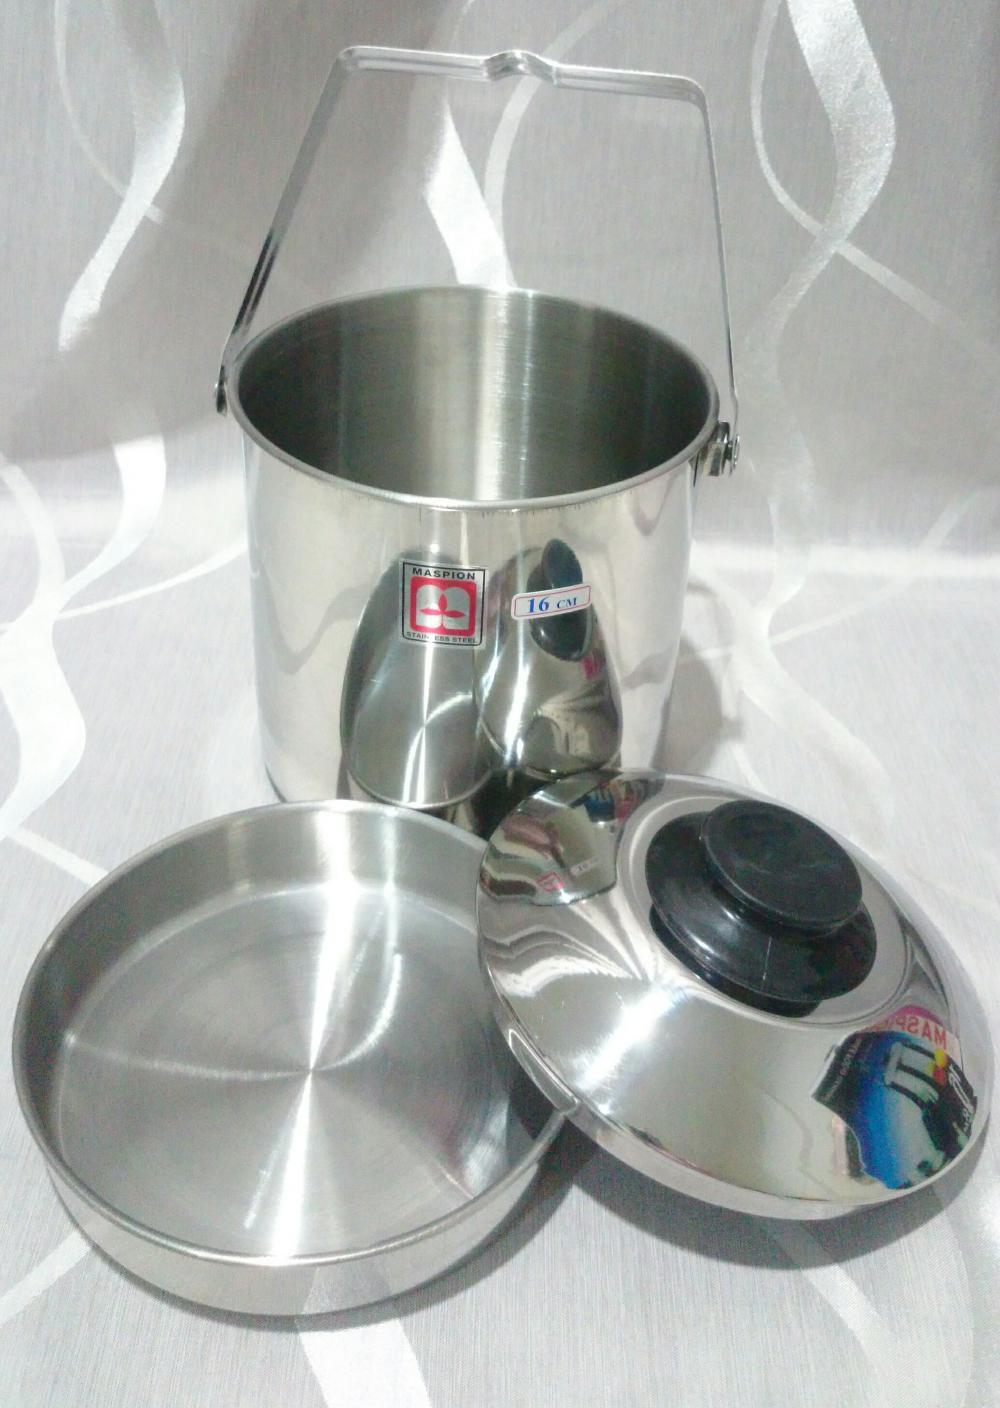 MASPION Single Food Carrier / RANTANG TUNGGAL MASPION 16 CM di lapak kitchenware_id kitchenware_id